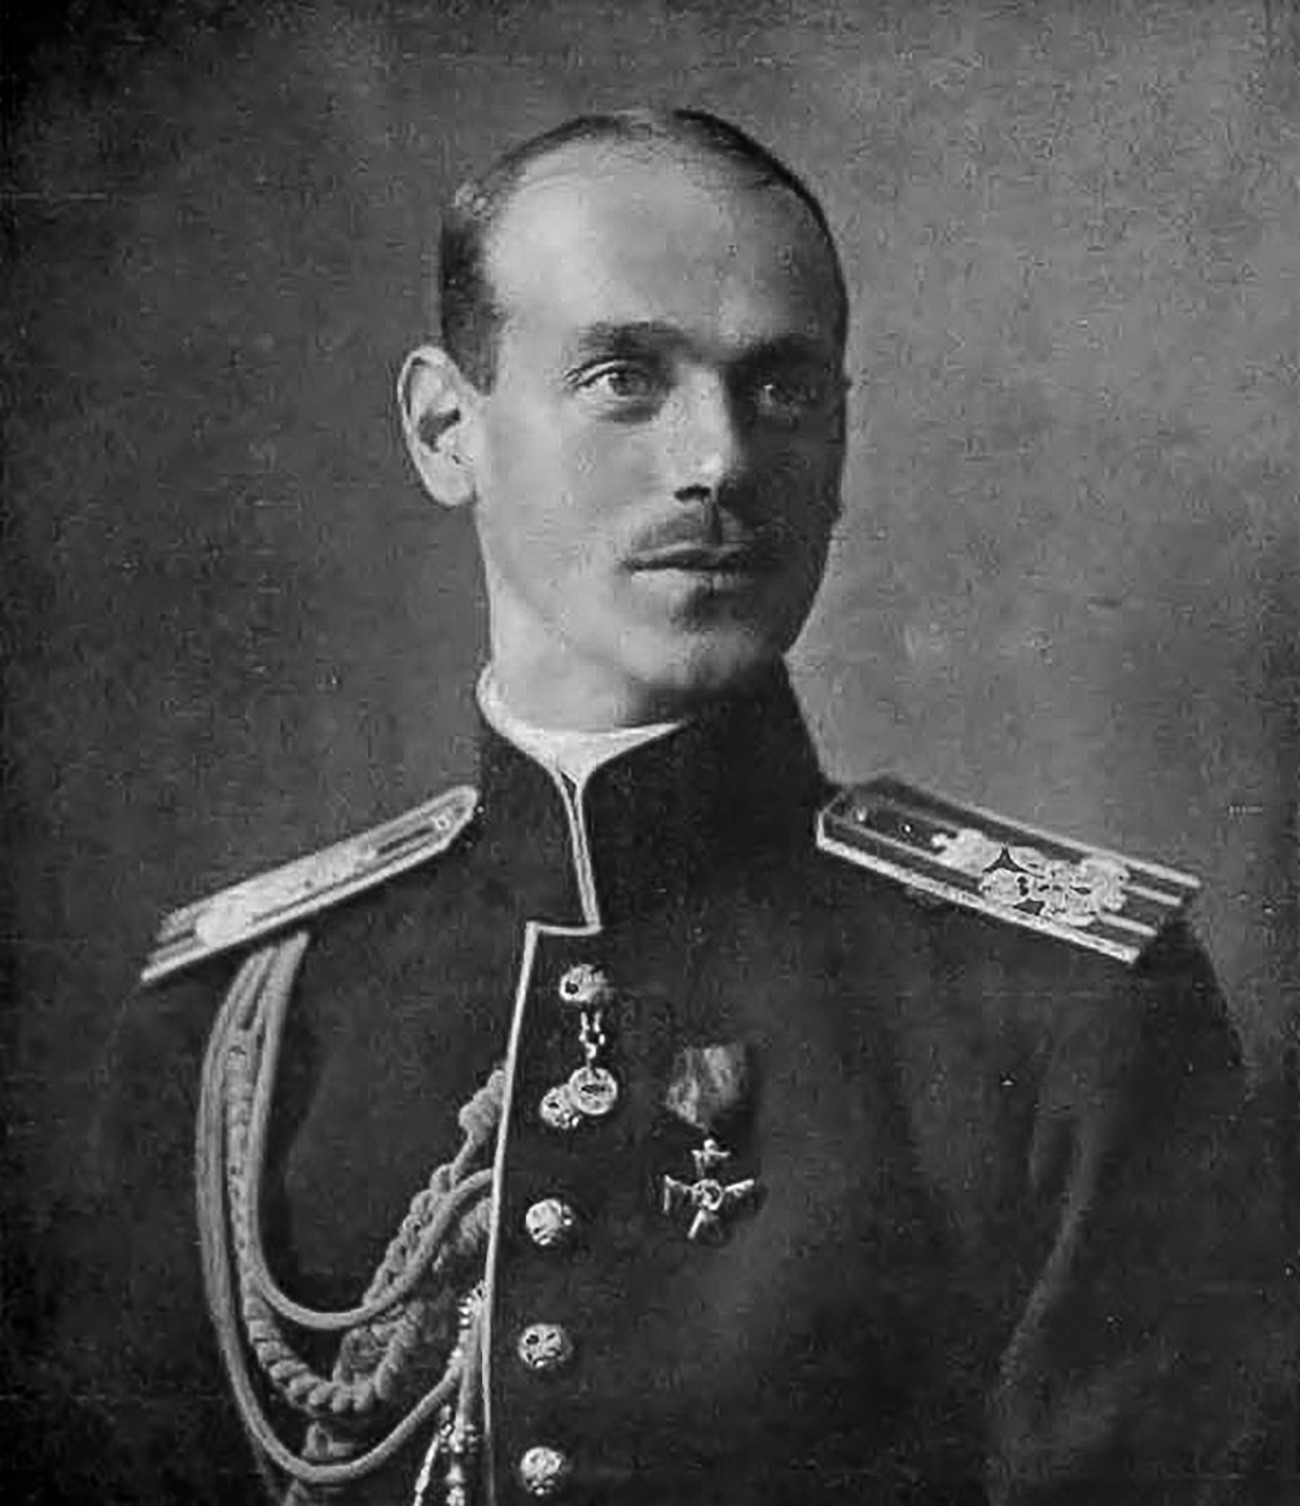 Russian Grand Duke Mikhail Alexandrovich, the last tsar's younger brother.